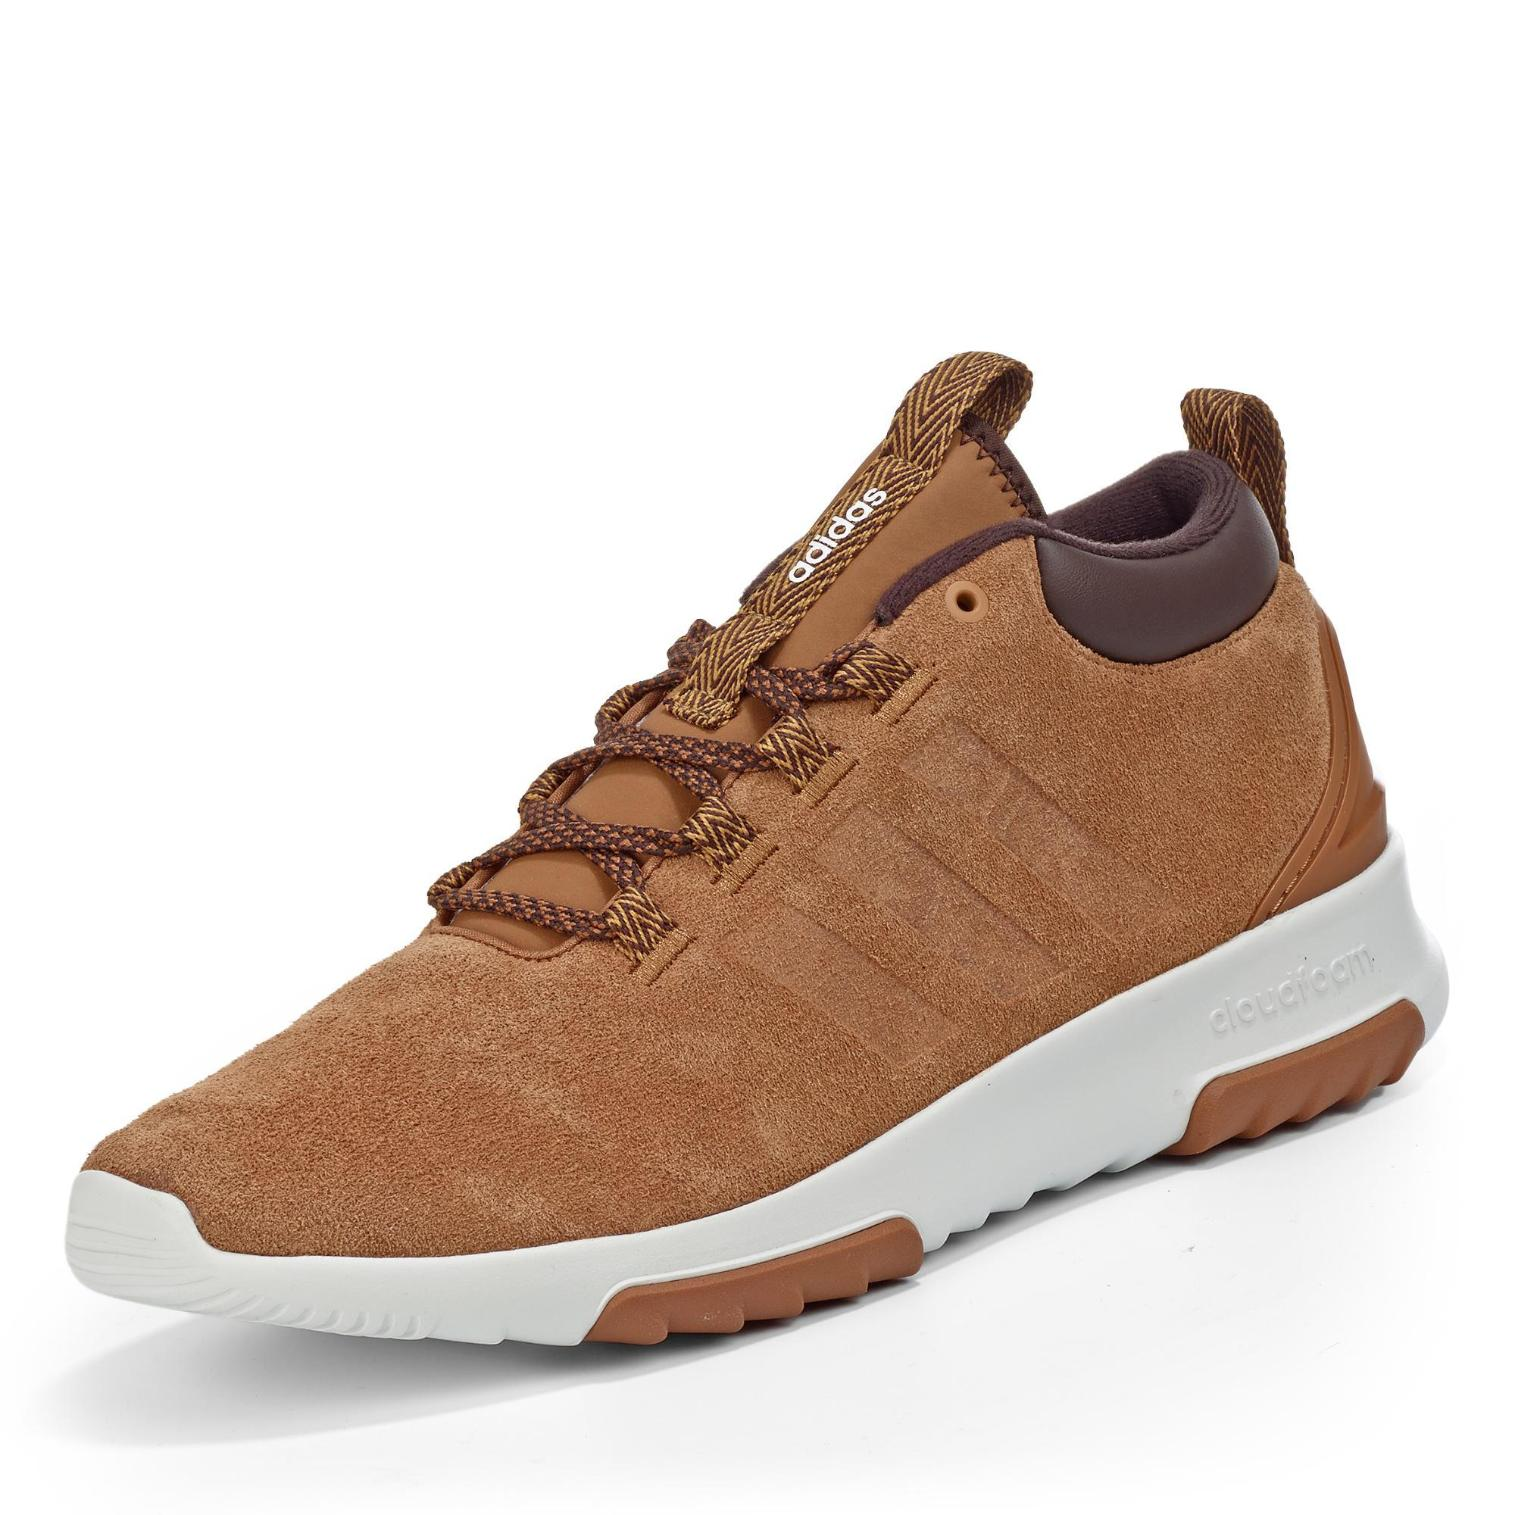 adidas neo cloudfoam Racer Mid Sneakerboots in Farbe hellbraun